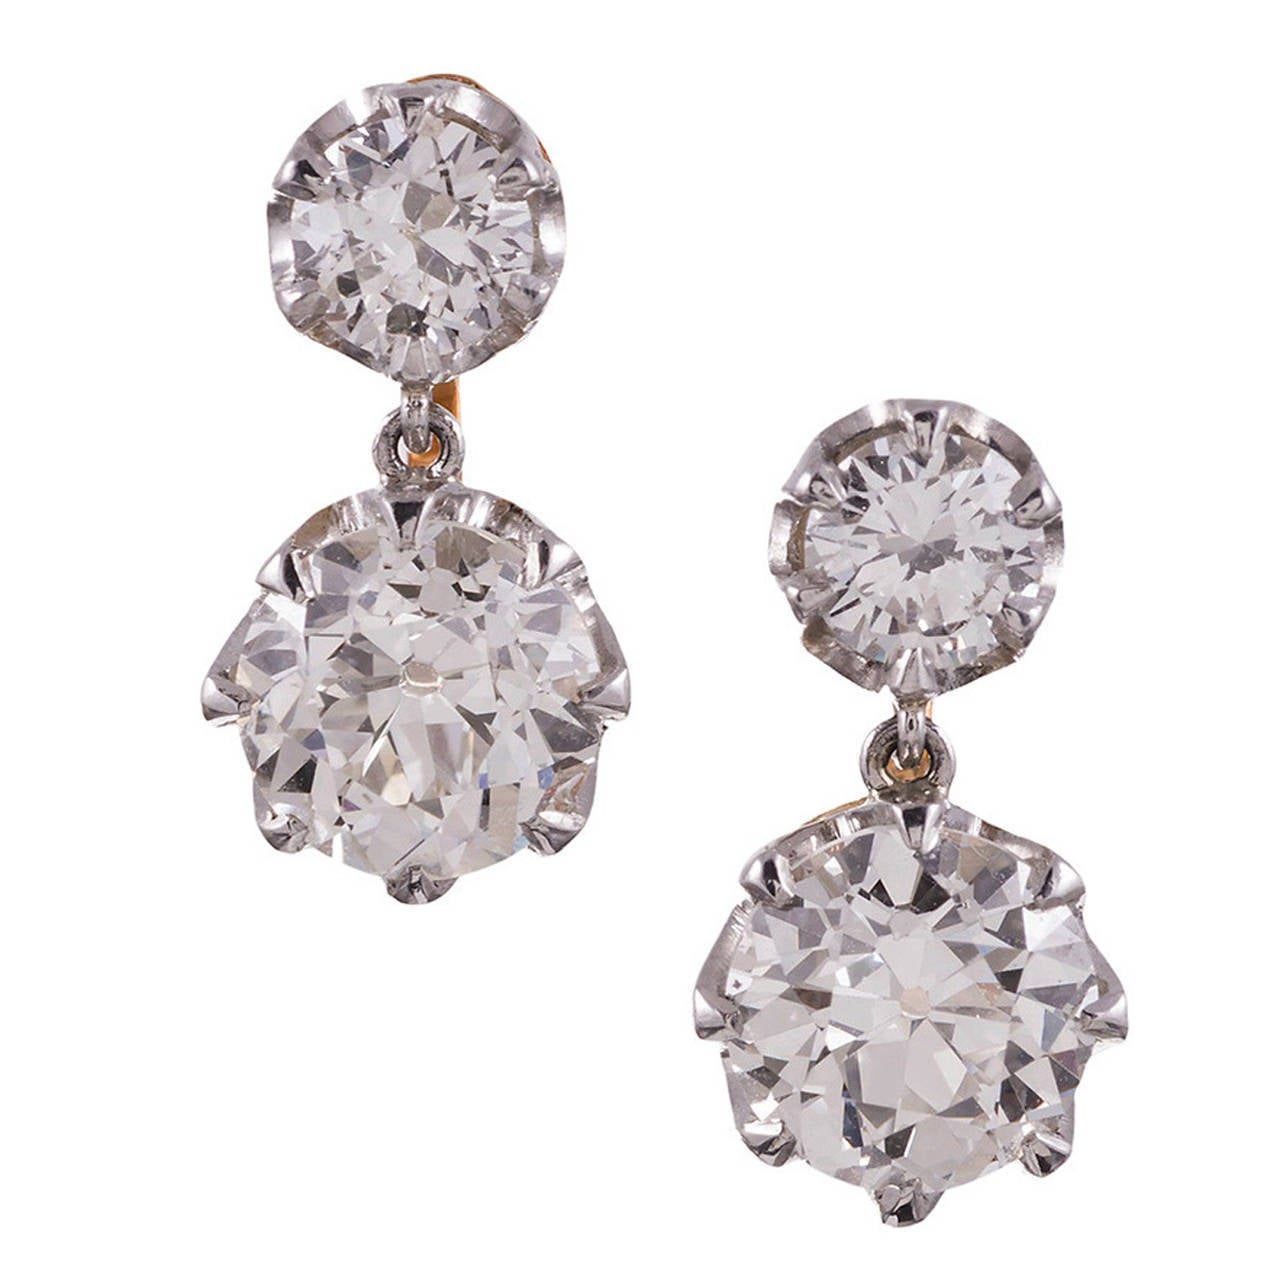 2 63 Carat Old European Cut Double Diamond Drop Earrings For